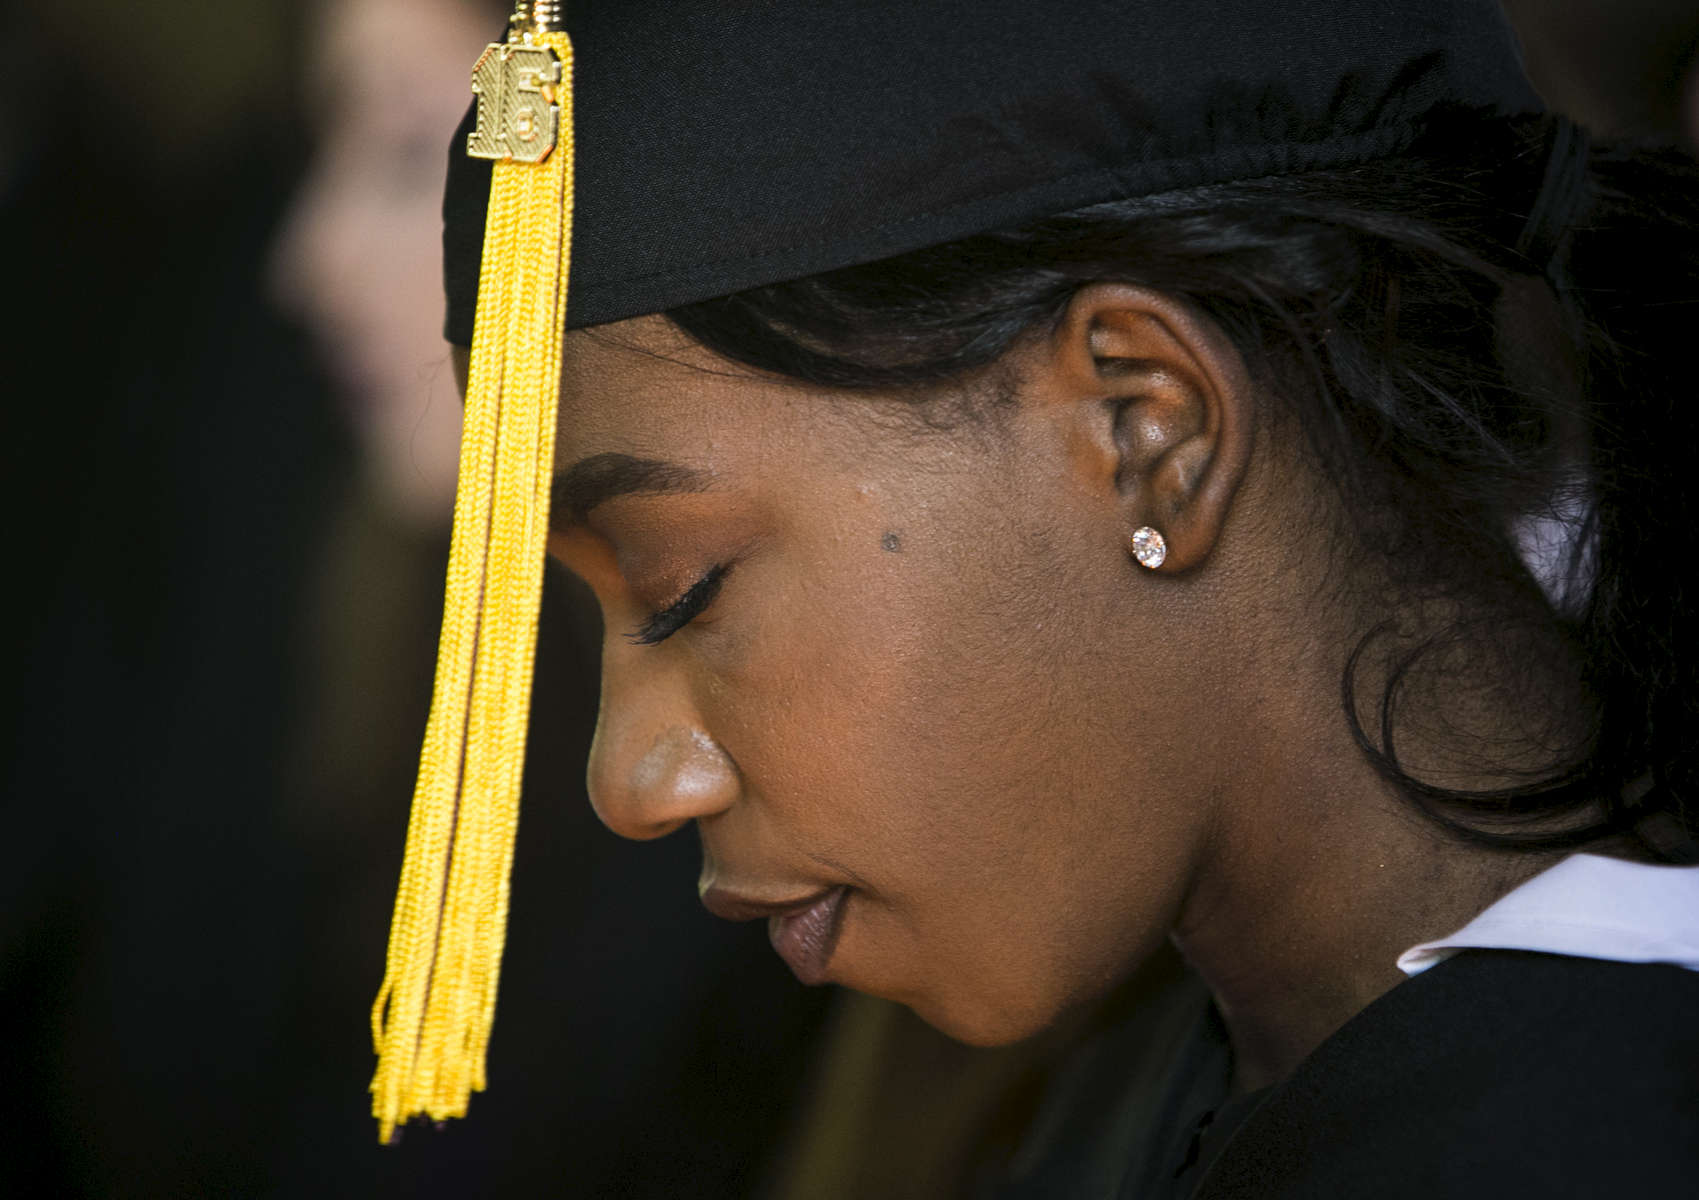 May 22, 2016 - Paige Madison closes her eyes and sits in quiet reflection during the final chapel the St. George's class of 2016 will have together before their commencement ceremony at the school. {quote}We viewed coming here differently than our peers here or outside of these walls. As far as black students going off to college, we've broken racial boundaries and geographical boundaries and socioeconomic boundaries, so now we are ready for what comes next.{quote} she said. (Mike Brown/The Commercial Appeal)